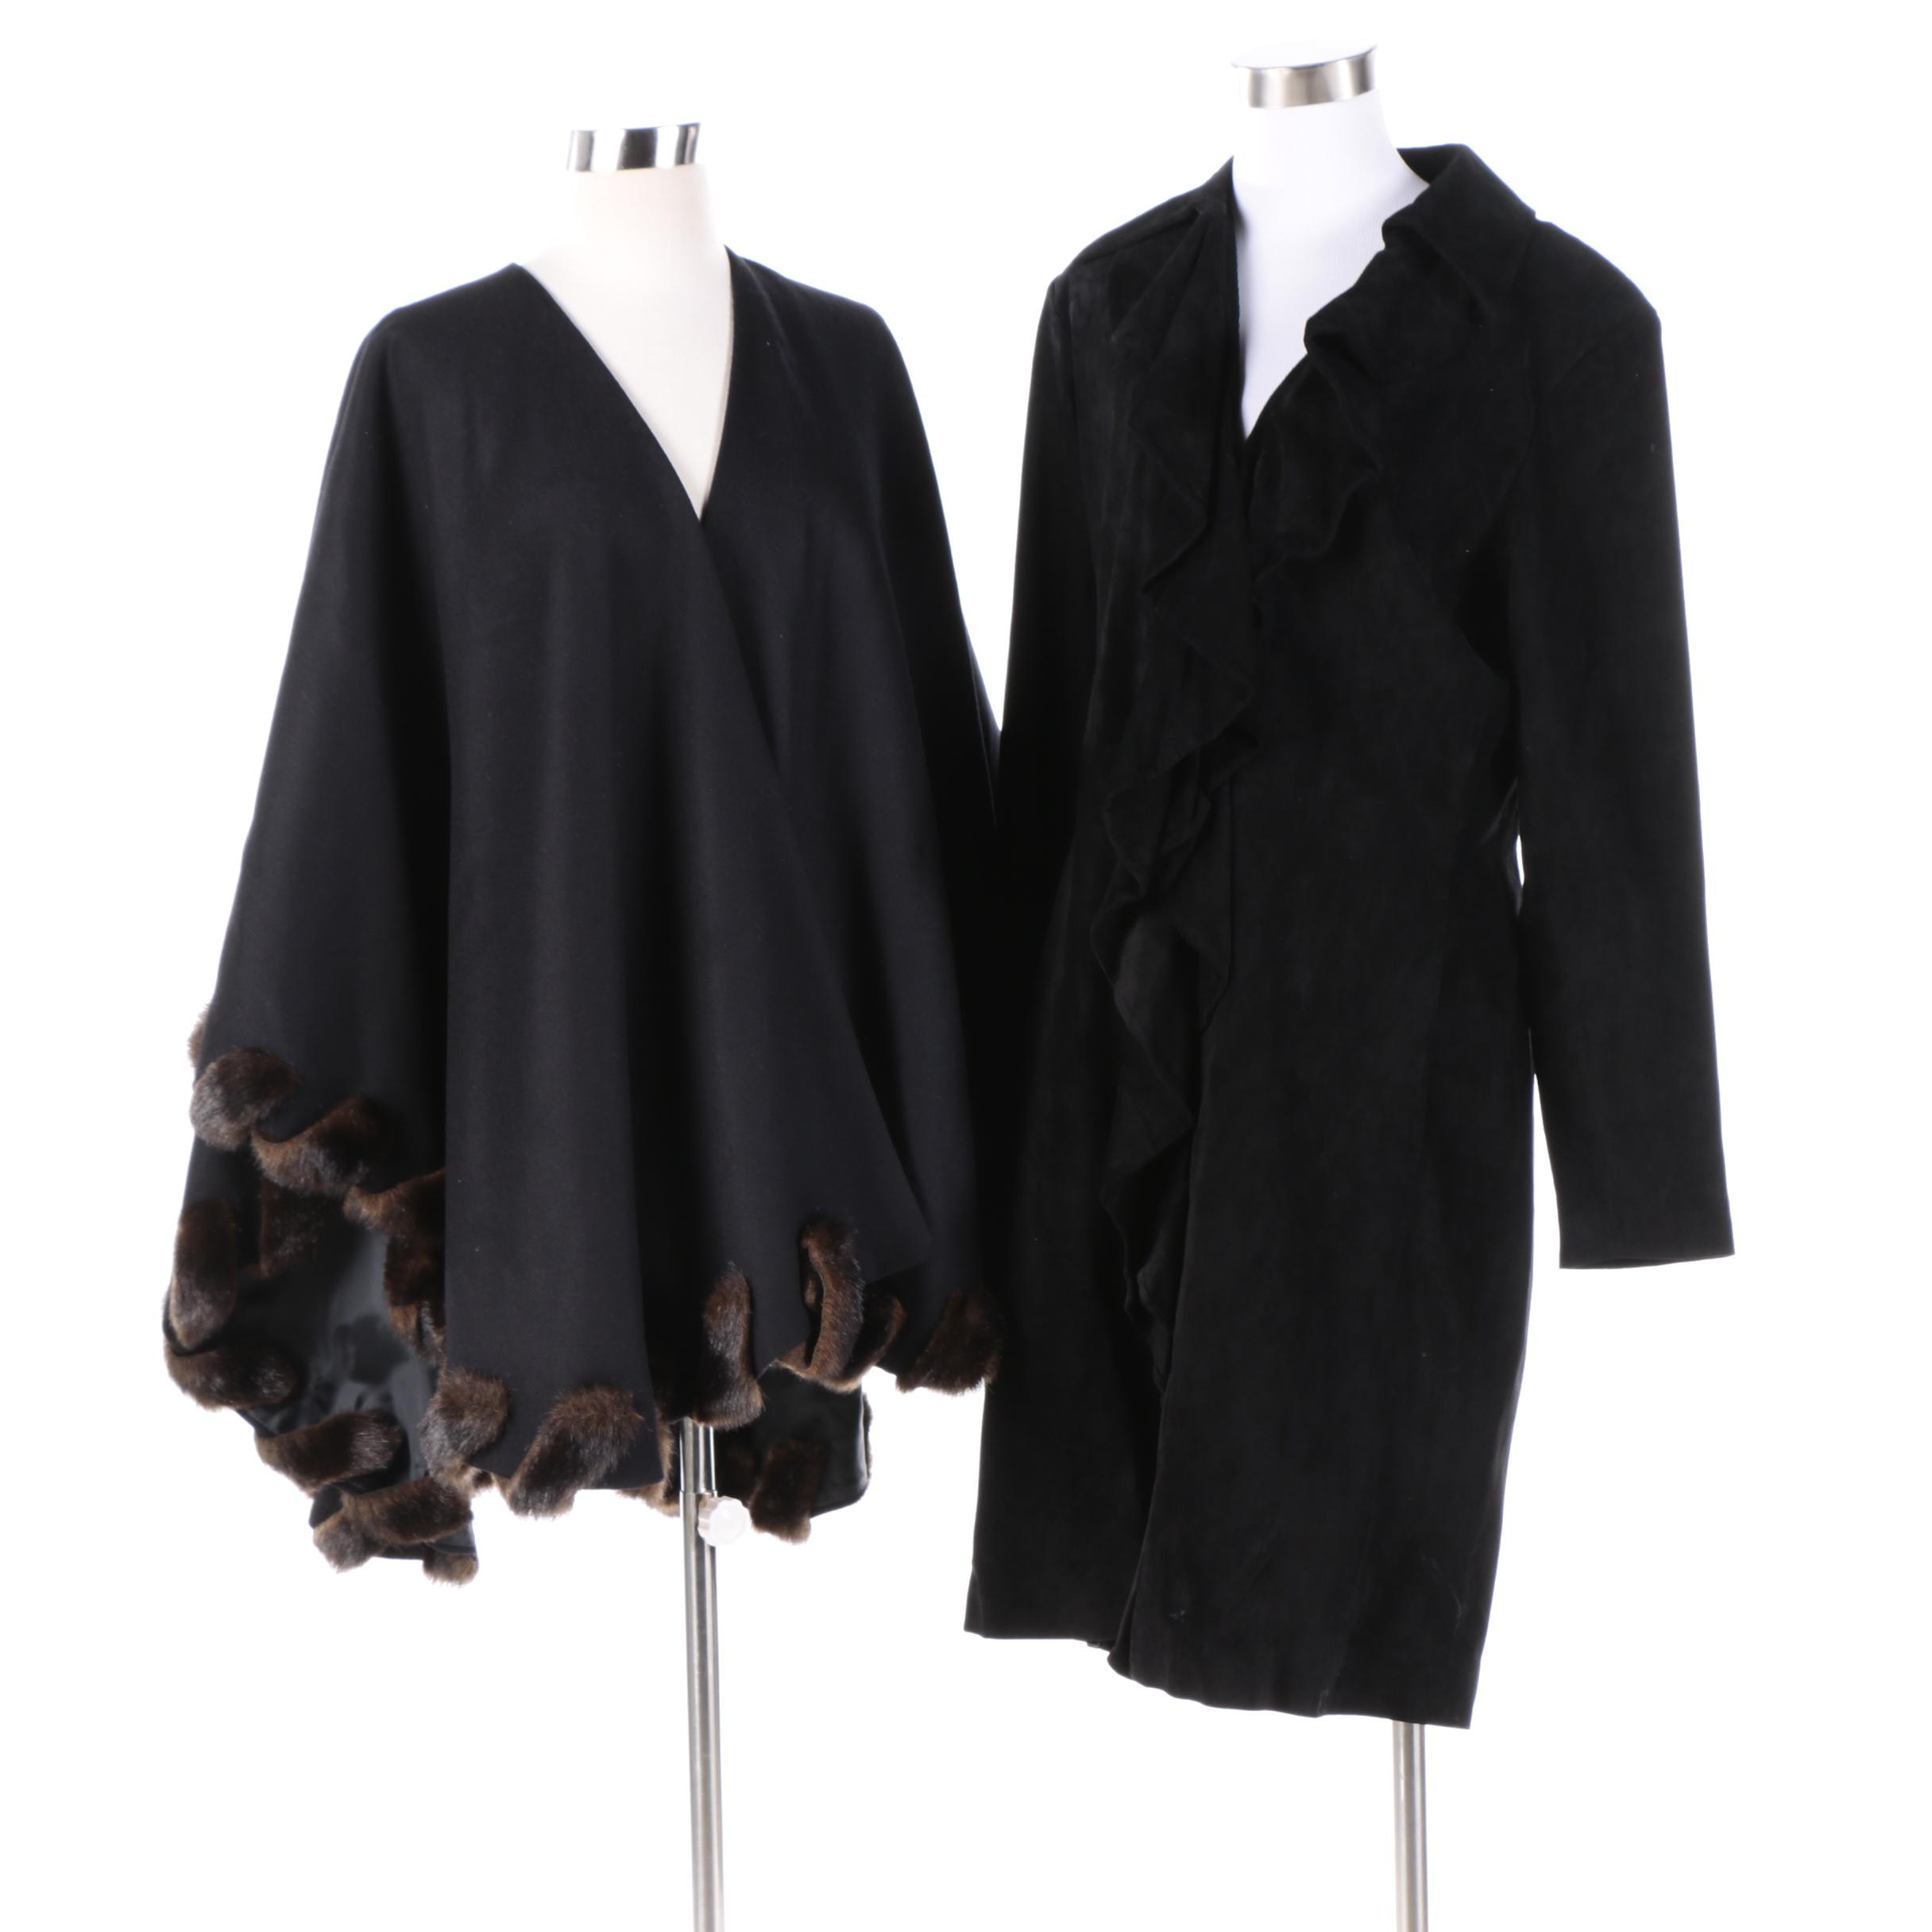 Women's Margaret Godfrey Suede Coat and Donna Salyers' Wool Cape with Faux Fur